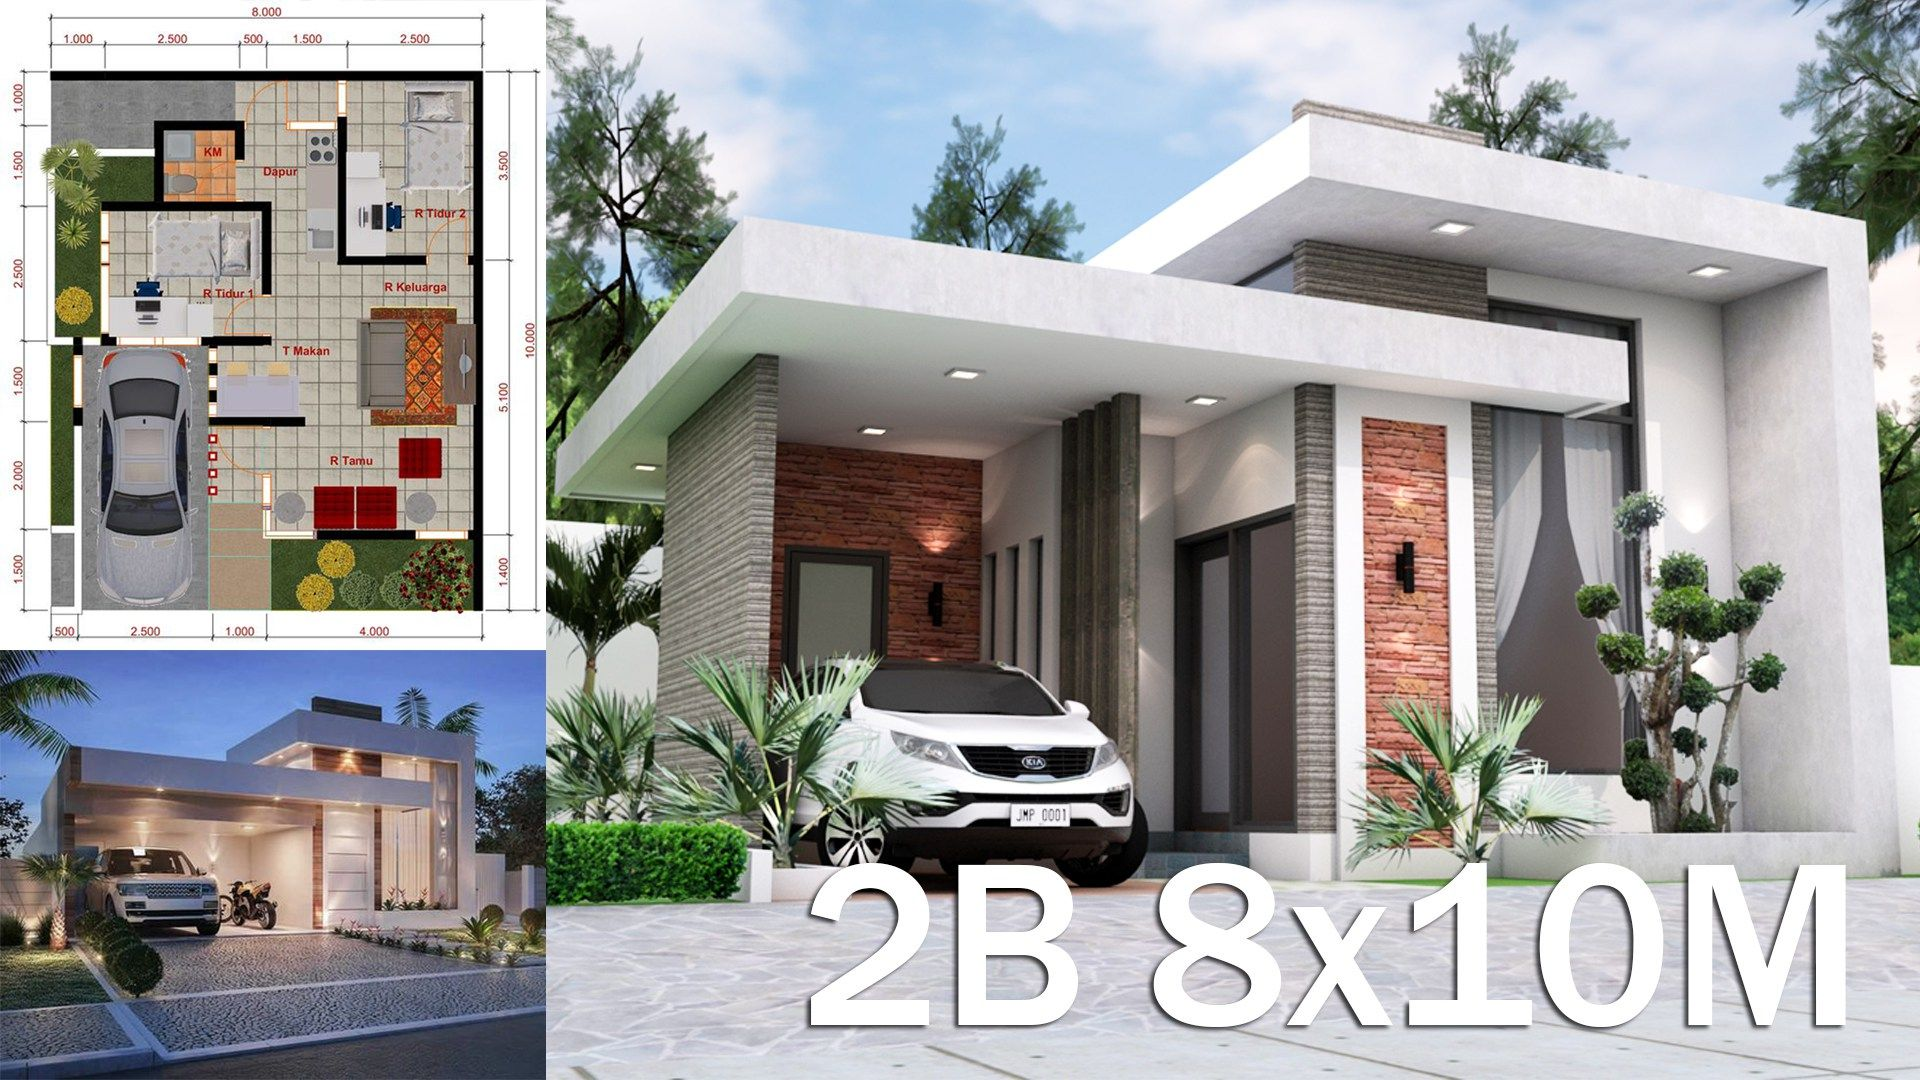 Sketchup House Modeling Idea From Photo 8x10m Rumah Indah